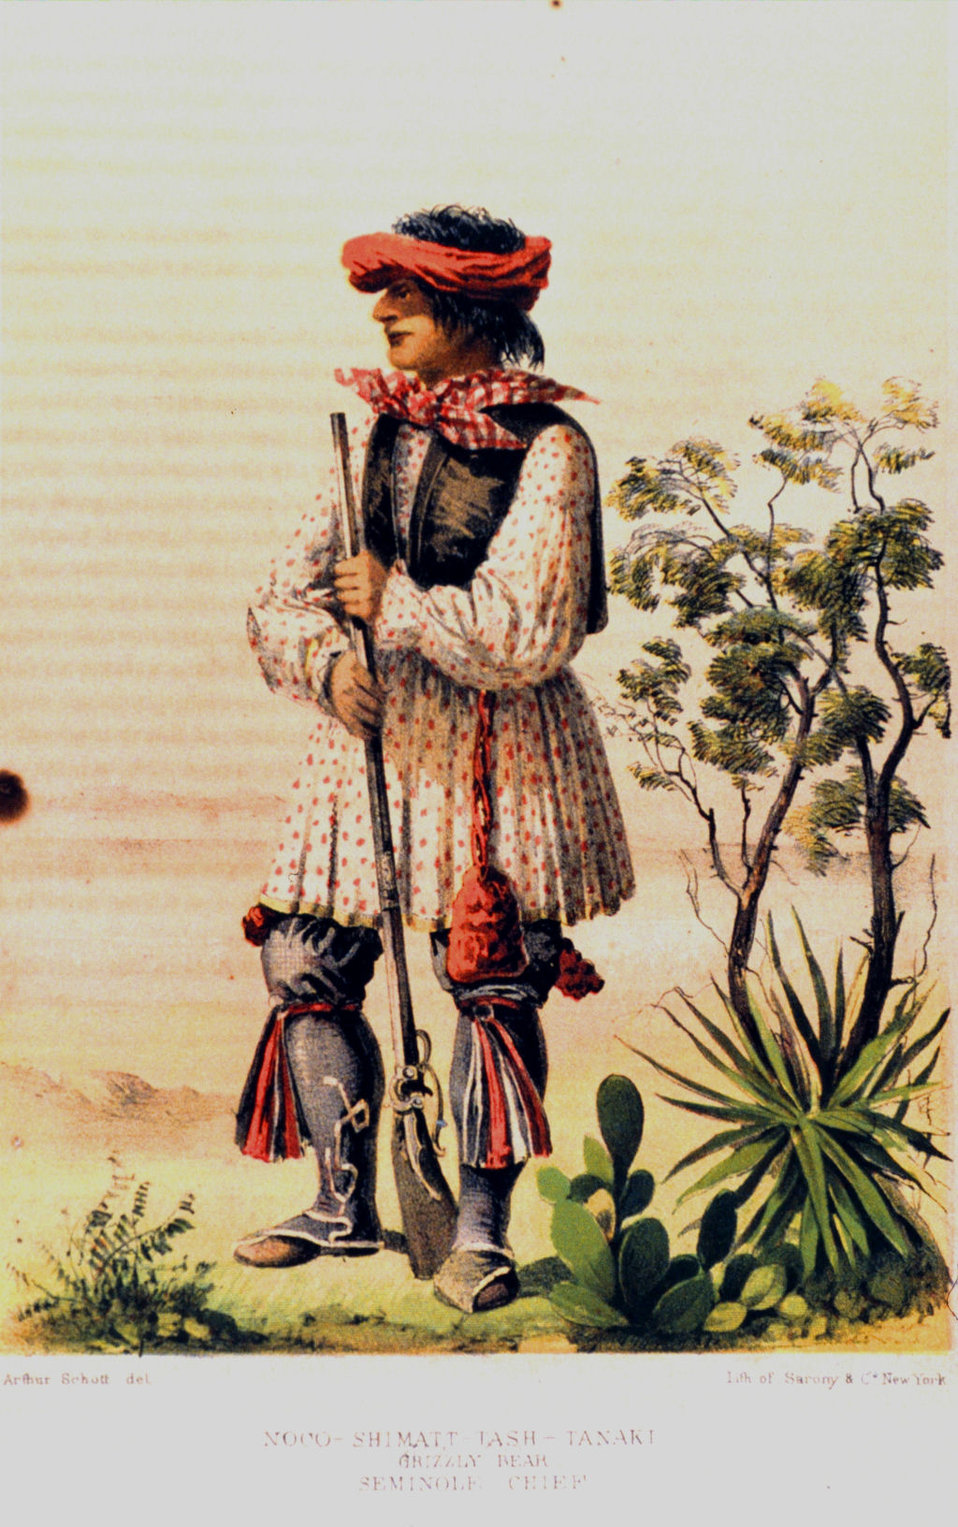 Noco Shimatt-Tash-Tanaki, Grizzly Bear, Seminole Chief.  In: 'United States and Mexican Boundary Survey.  Report of William H. Emory ....' Washington.  1857.  Volume I. P. 52. Library Call Number F786 .U45 1857.